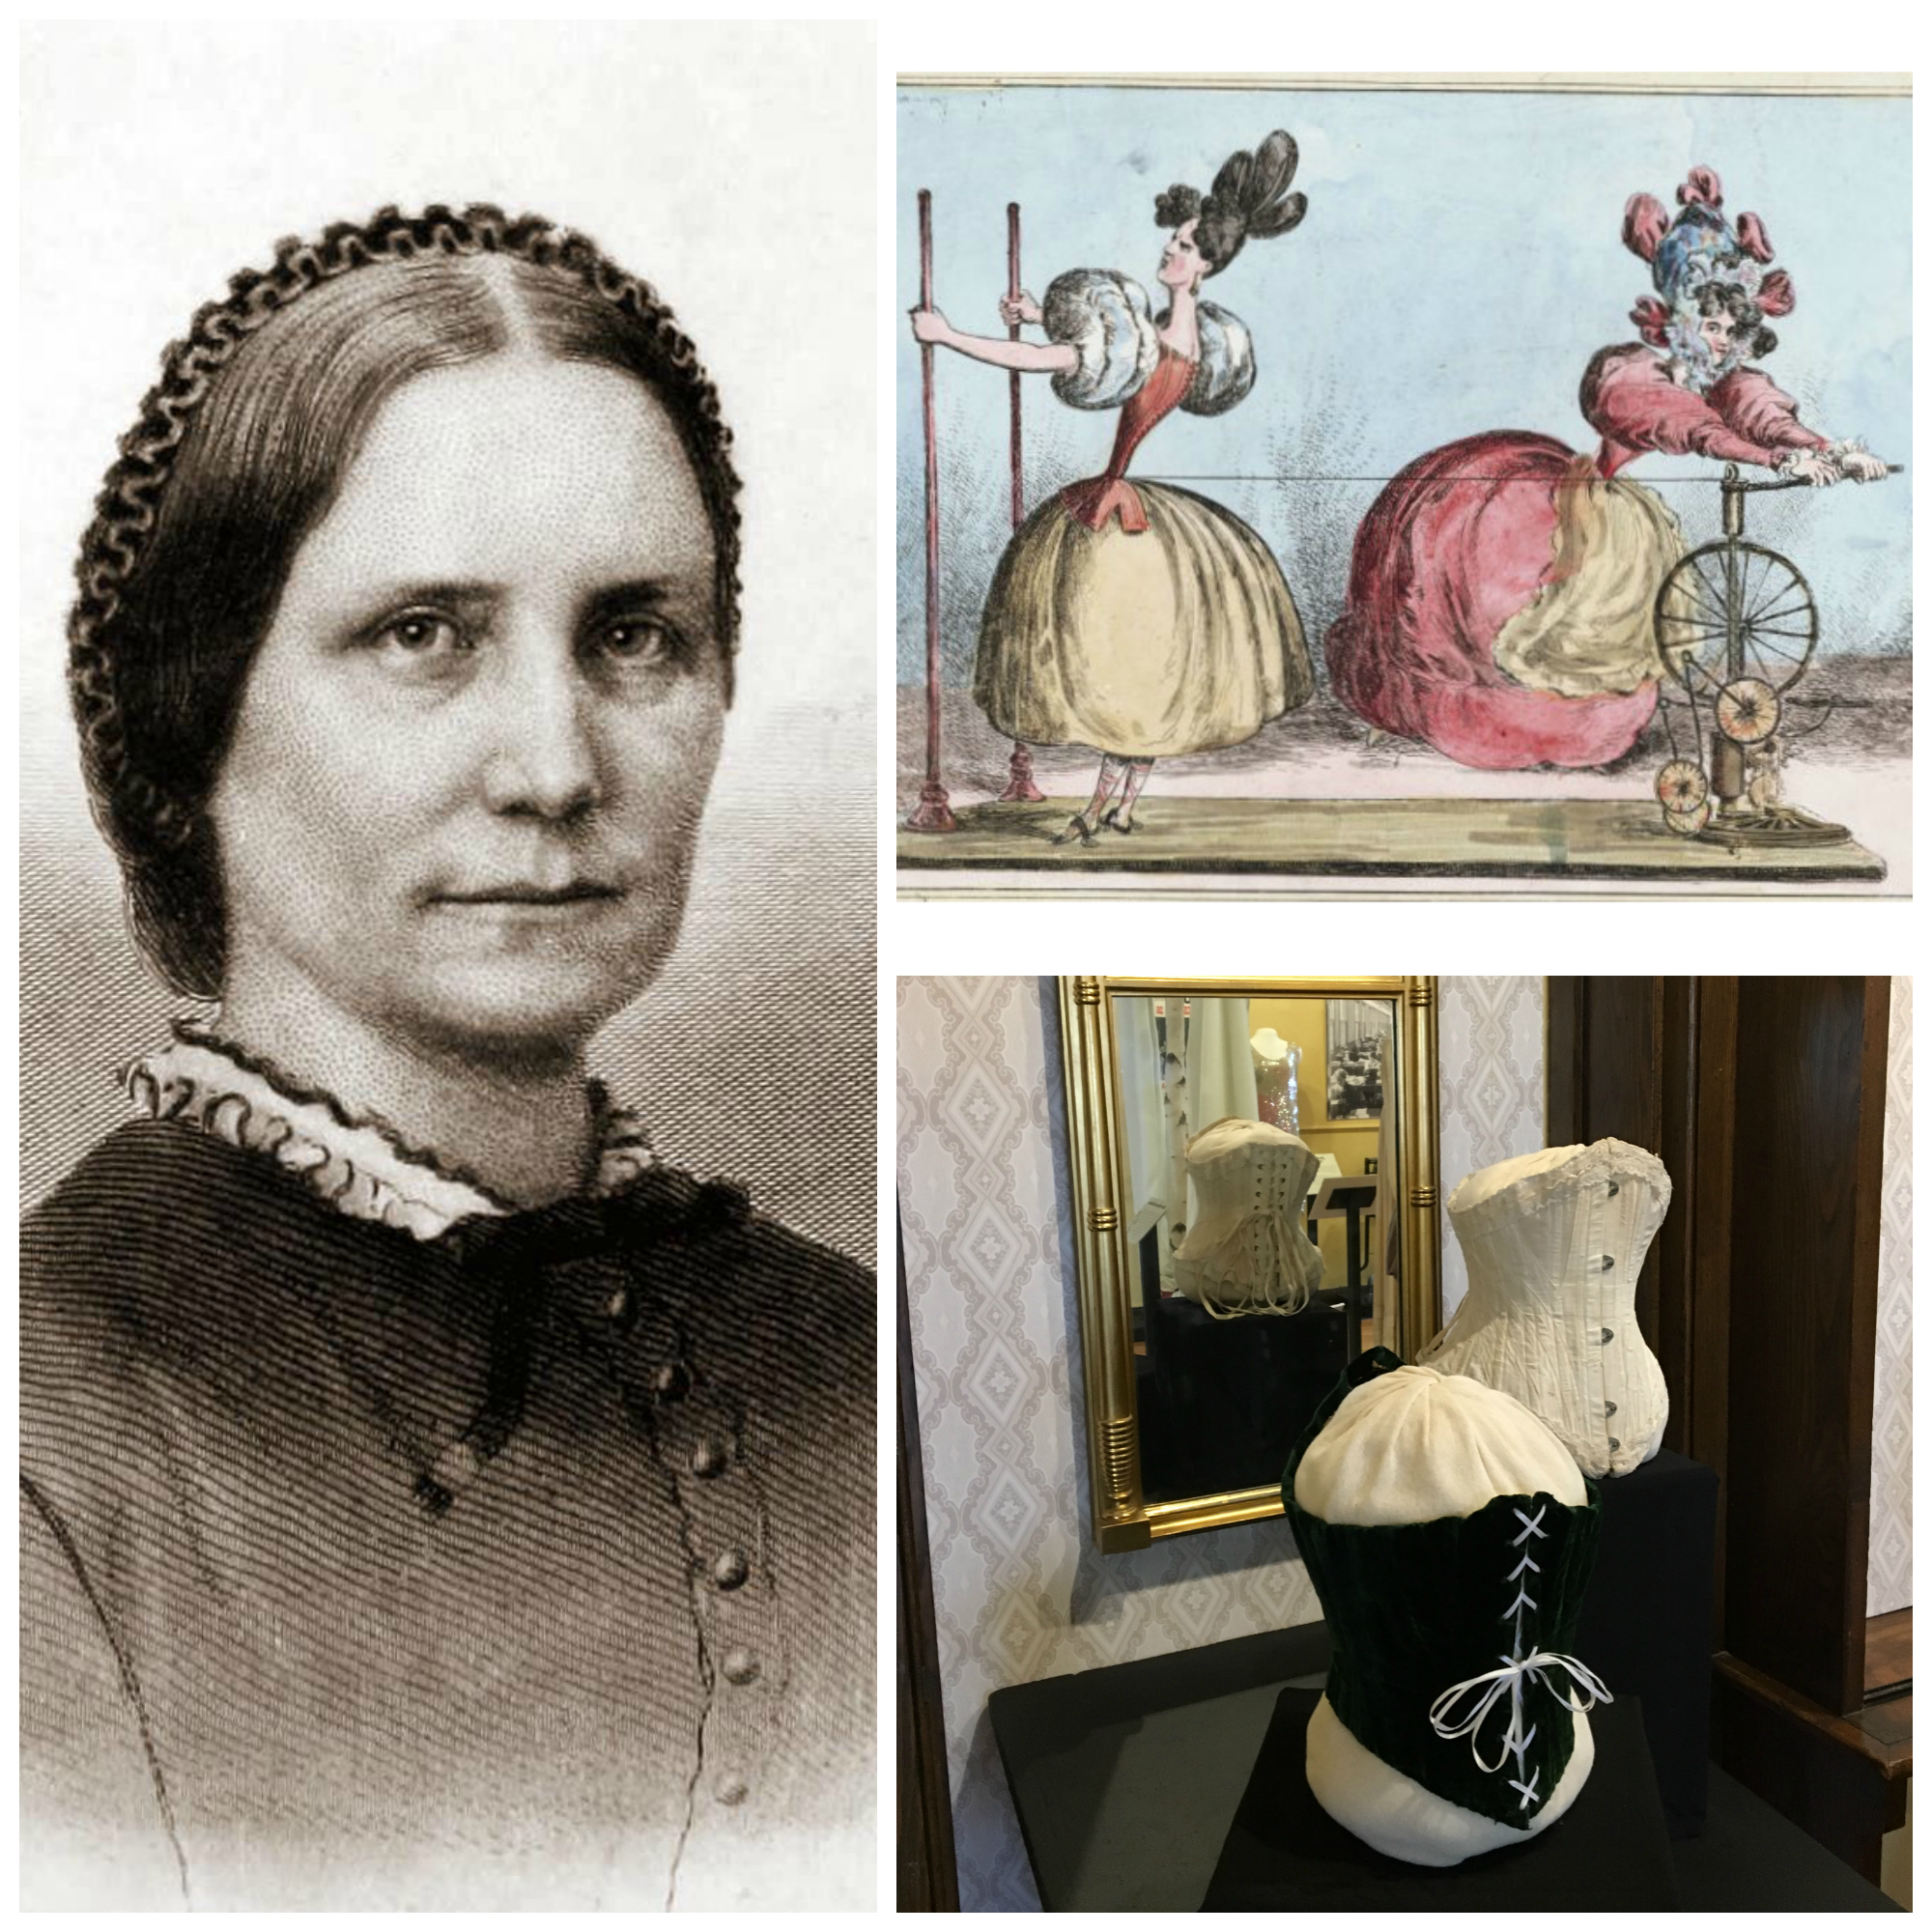 Image: (left) Mary Livermore, (top right) cartoon of the dramatic corseted waist, (bottom right) corsets on display at the Framingham History Center